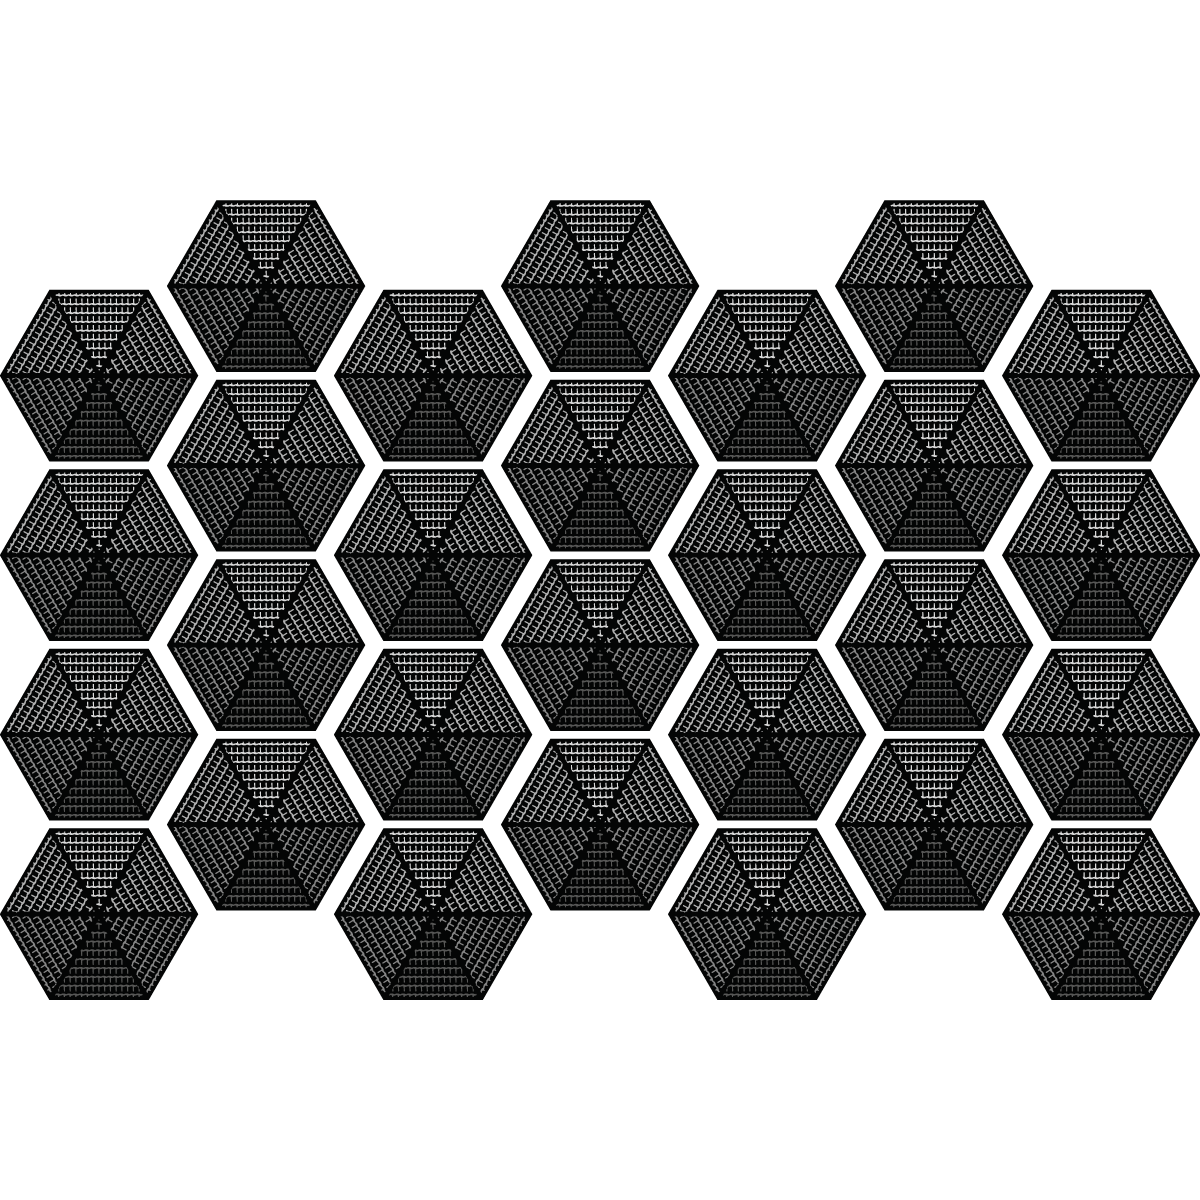 stickers carreaux de ciment hexagones design noir salle de bain et wc salle de bain ambiance. Black Bedroom Furniture Sets. Home Design Ideas